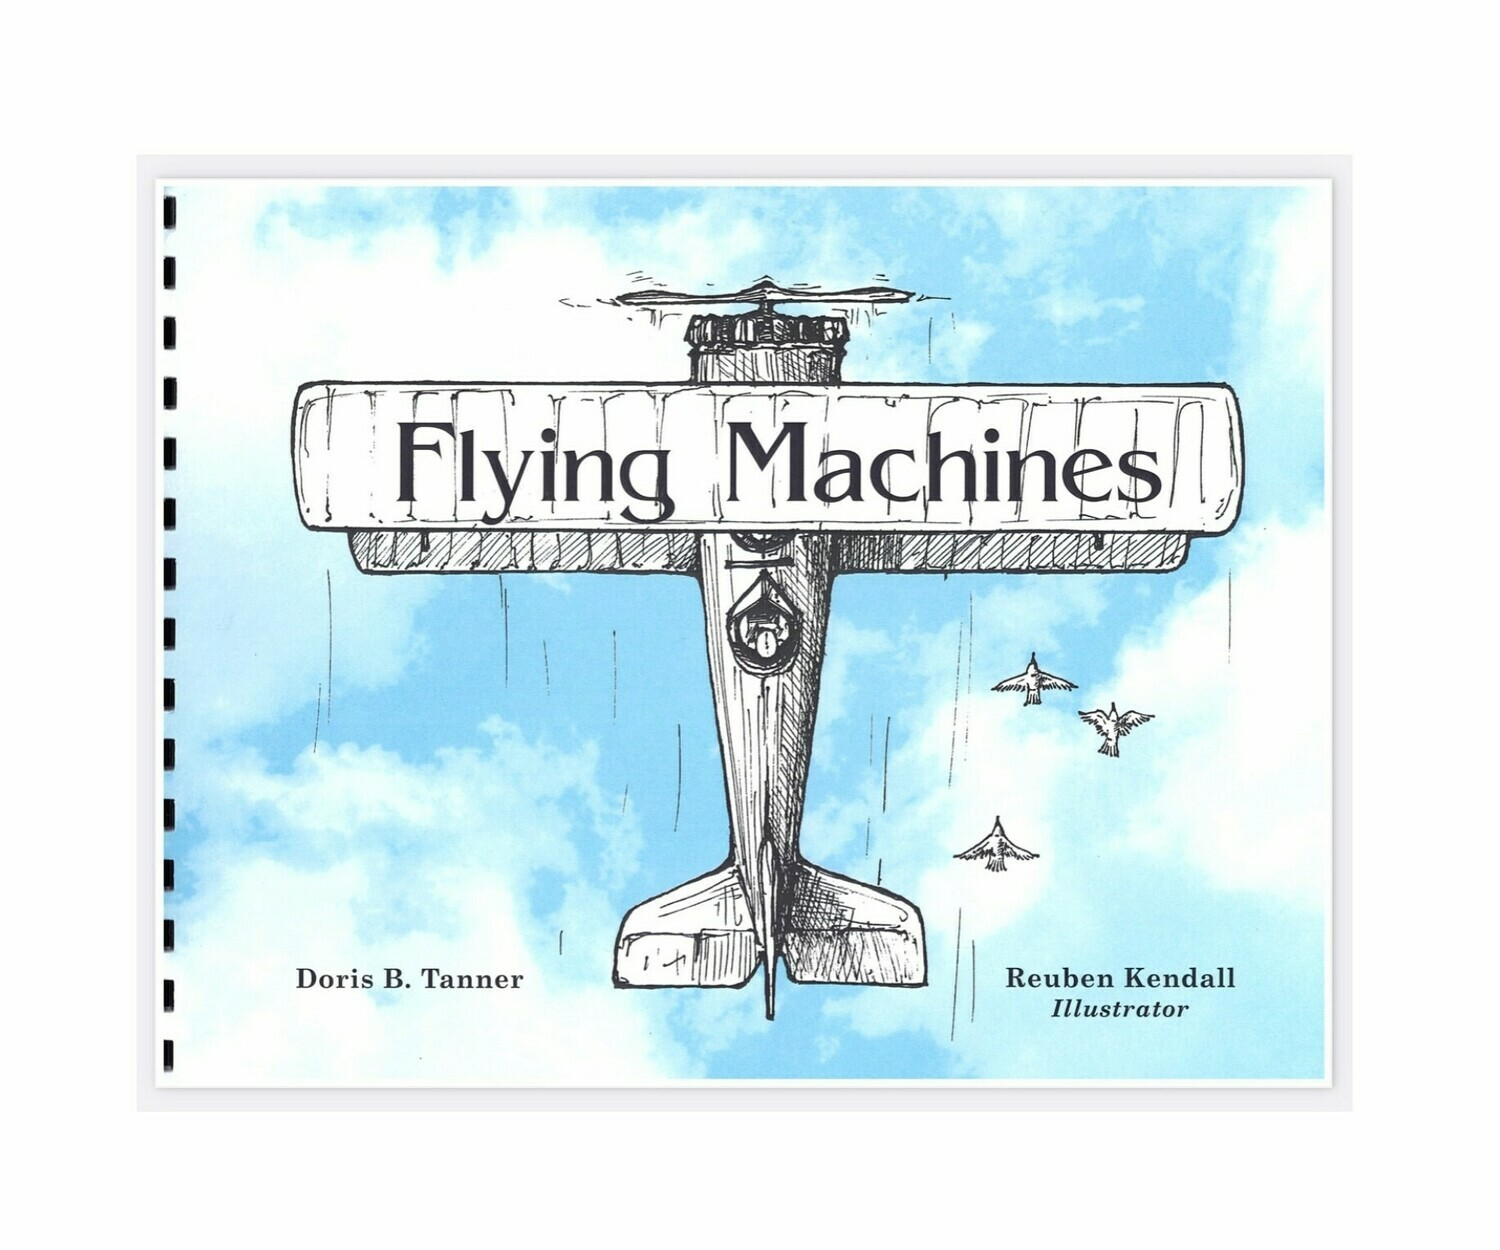 Flying Machines by Doris B. Tanner